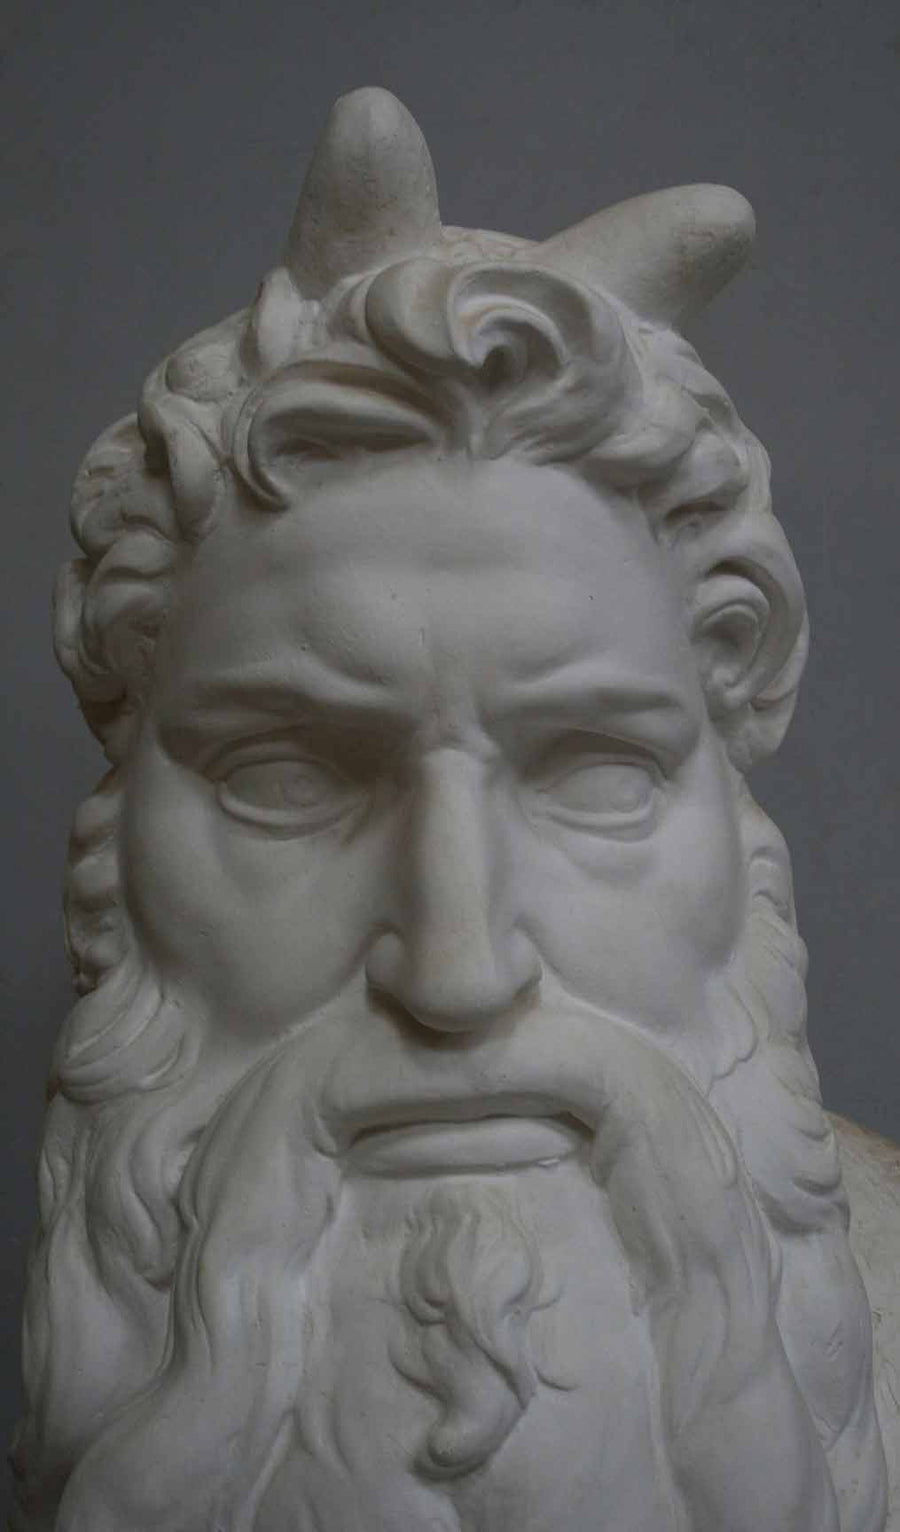 closeup photo of plaster cast bust of man, namely Moses, with curly hair and so-called horns and long beard on gray background